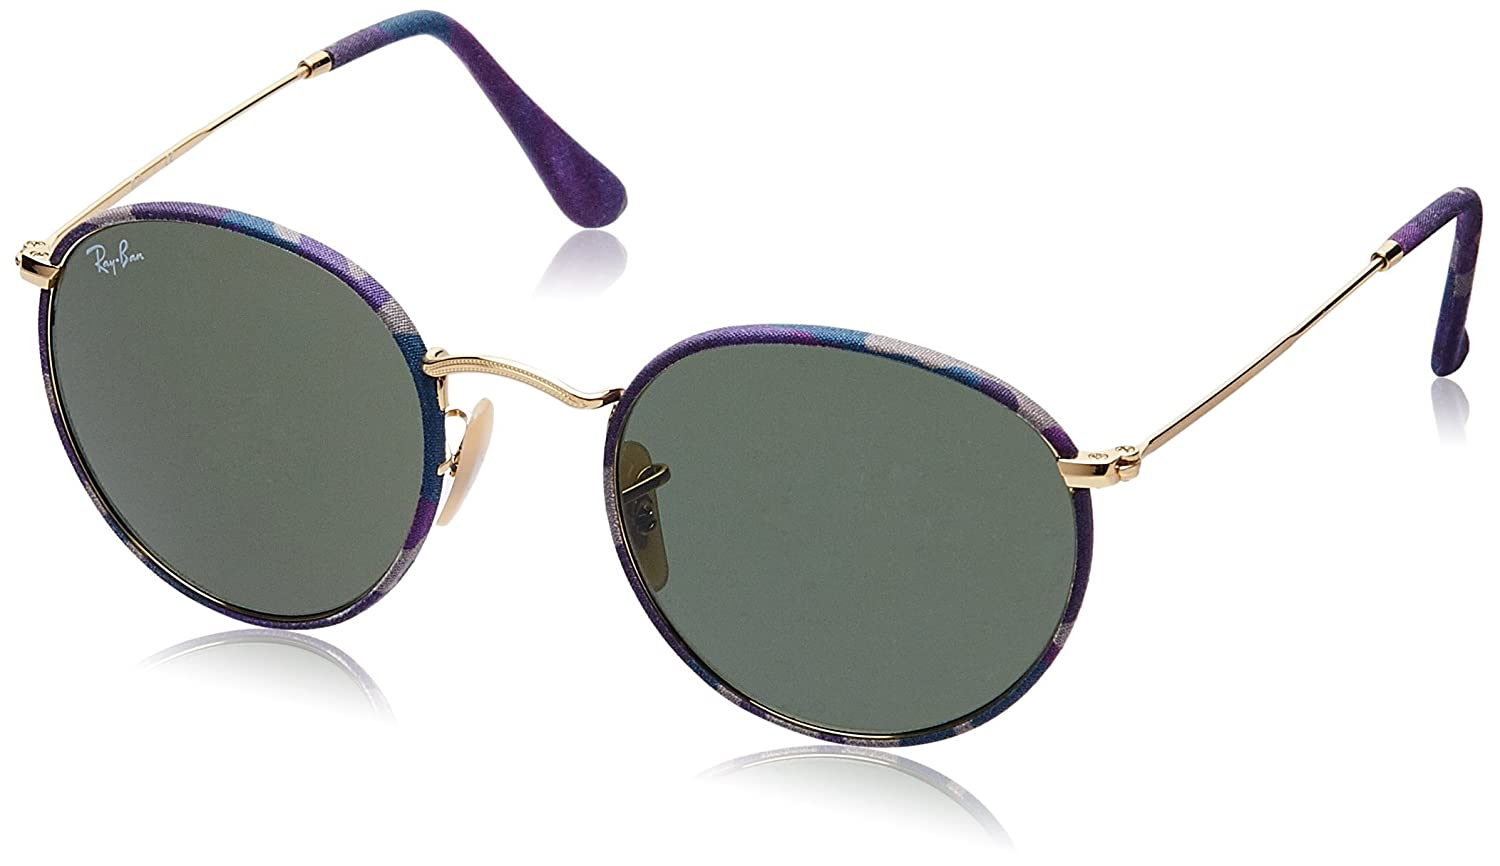 Ray Ban ROUND METAL RB JM Redondo metal hombre